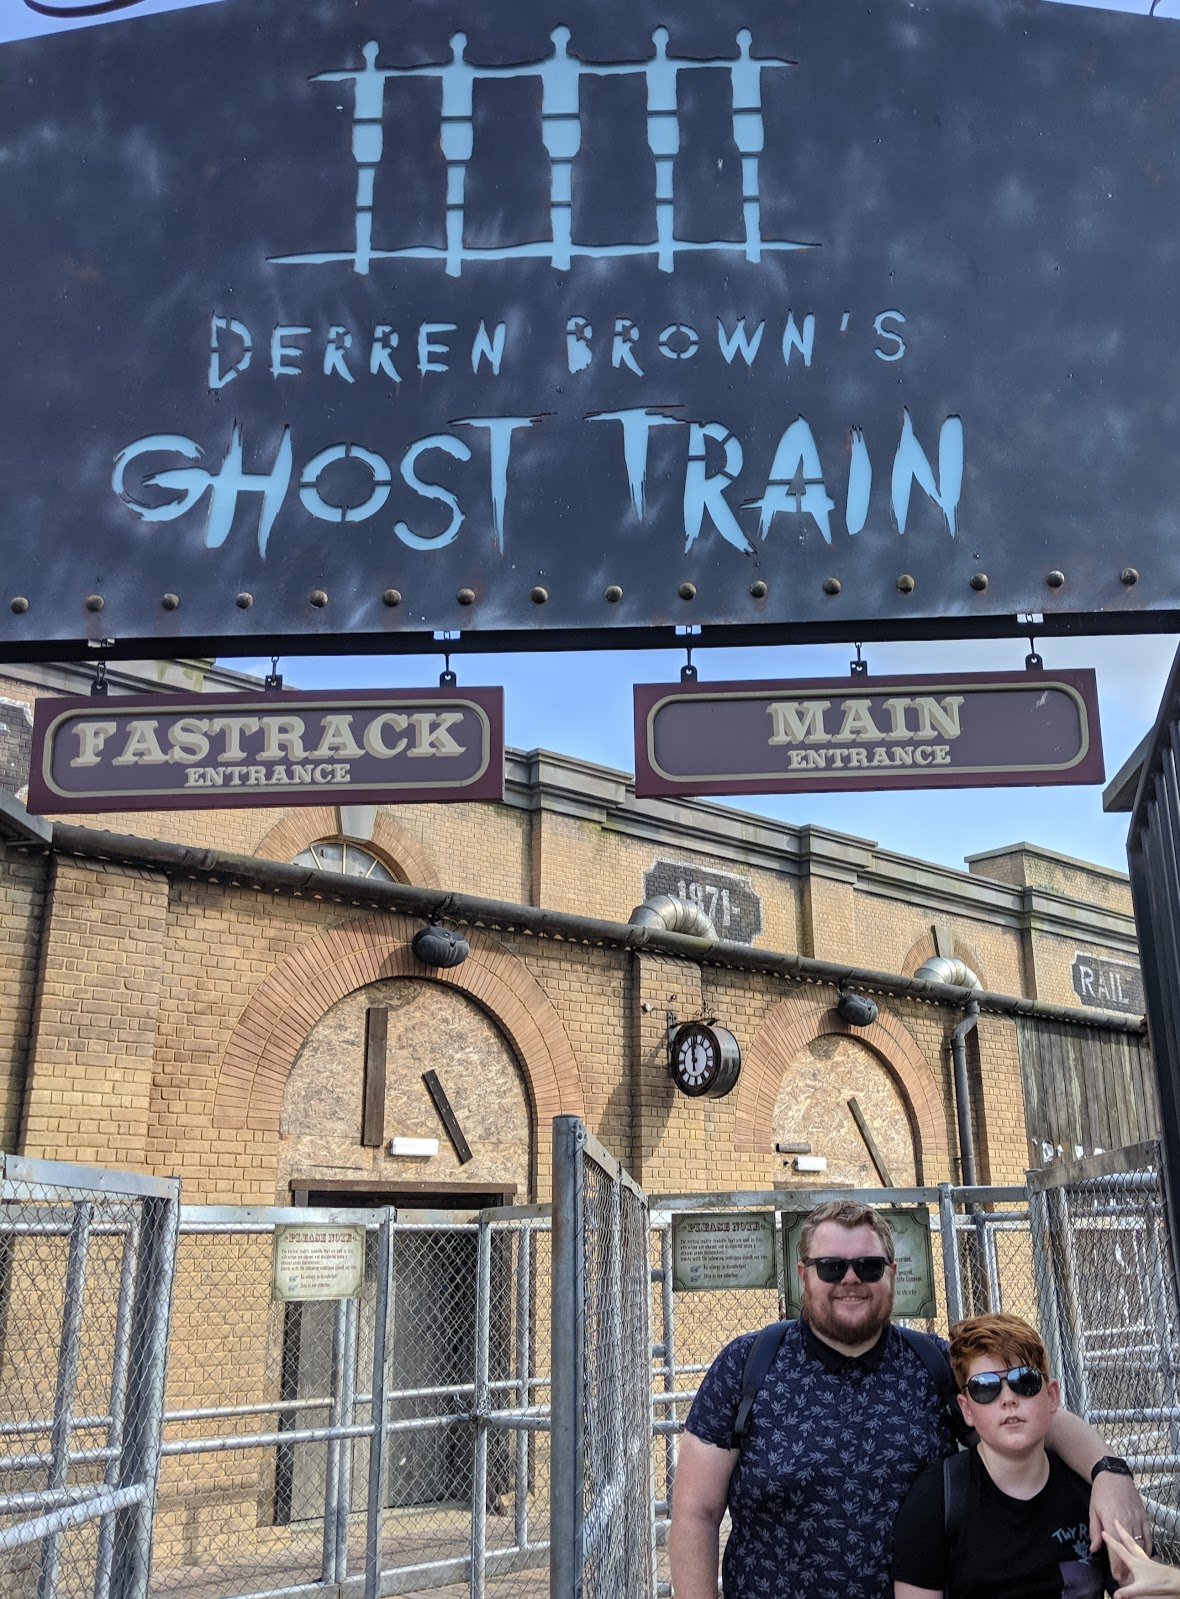 Exploring the Southern Merlin Theme Parks with Tweens  - Derren Brown Ghost Train Ride at Thorpe Park